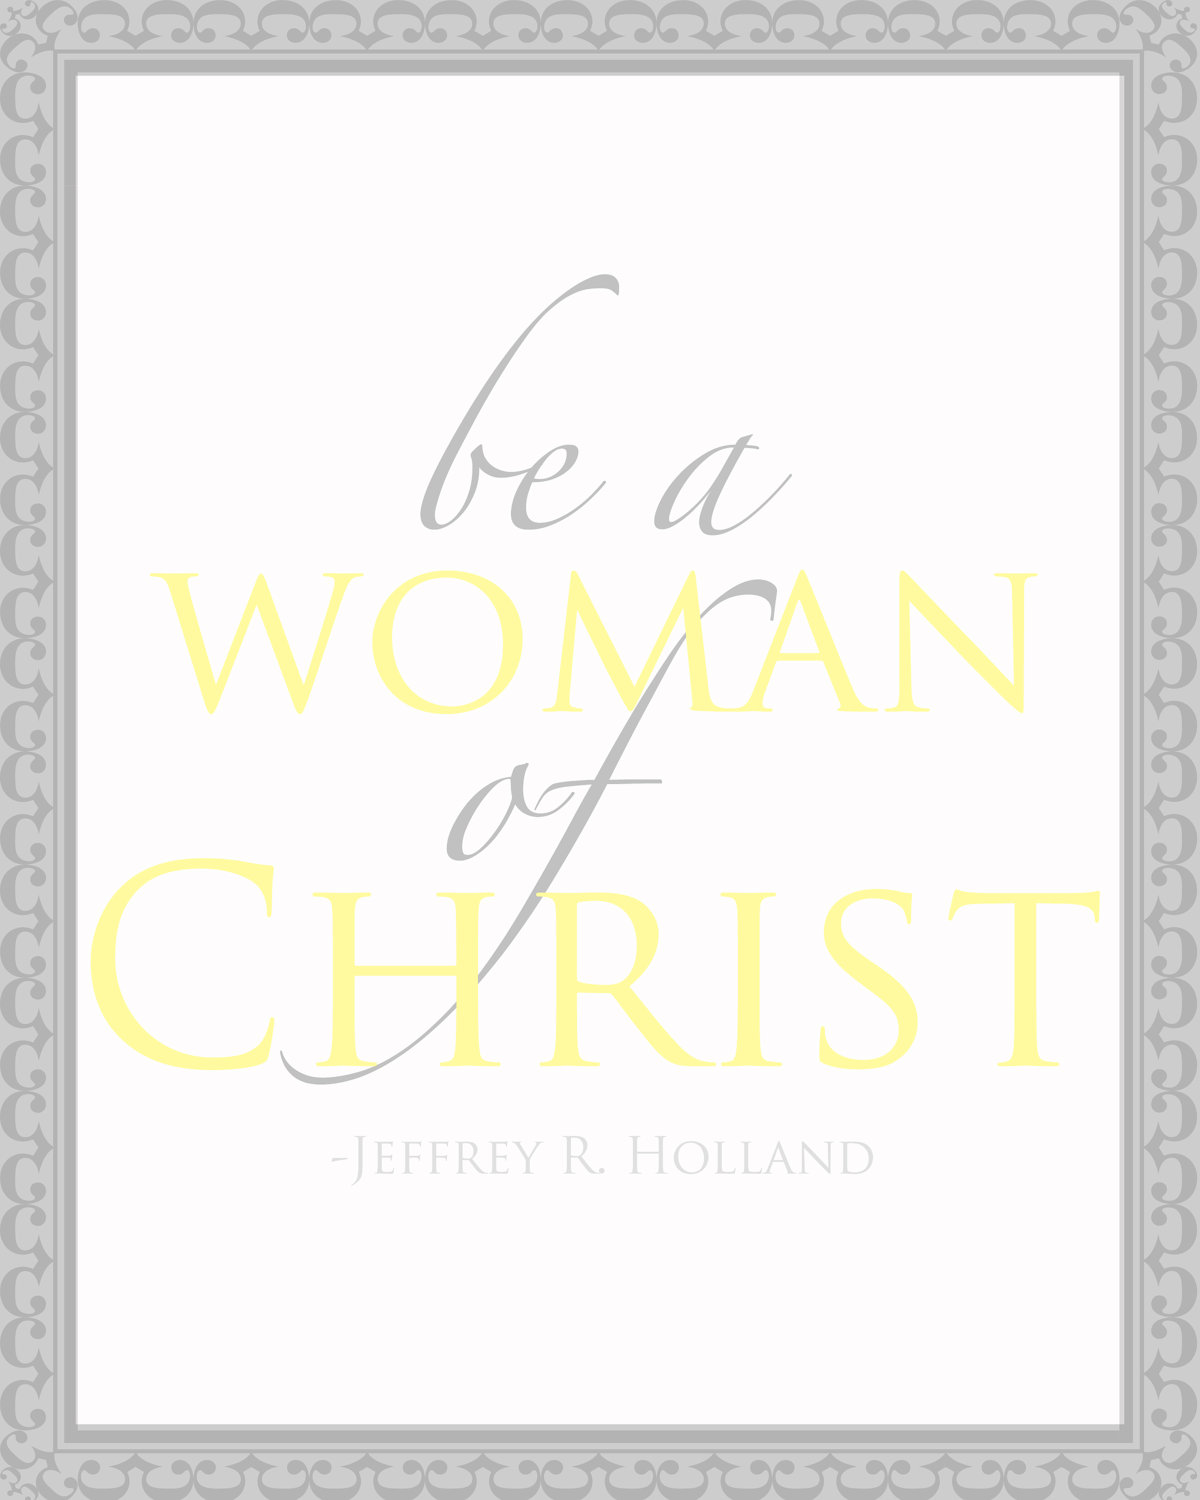 Inspirational Quotes On Pinterest: Christian Inspirational Quotes For Women. QuotesGram